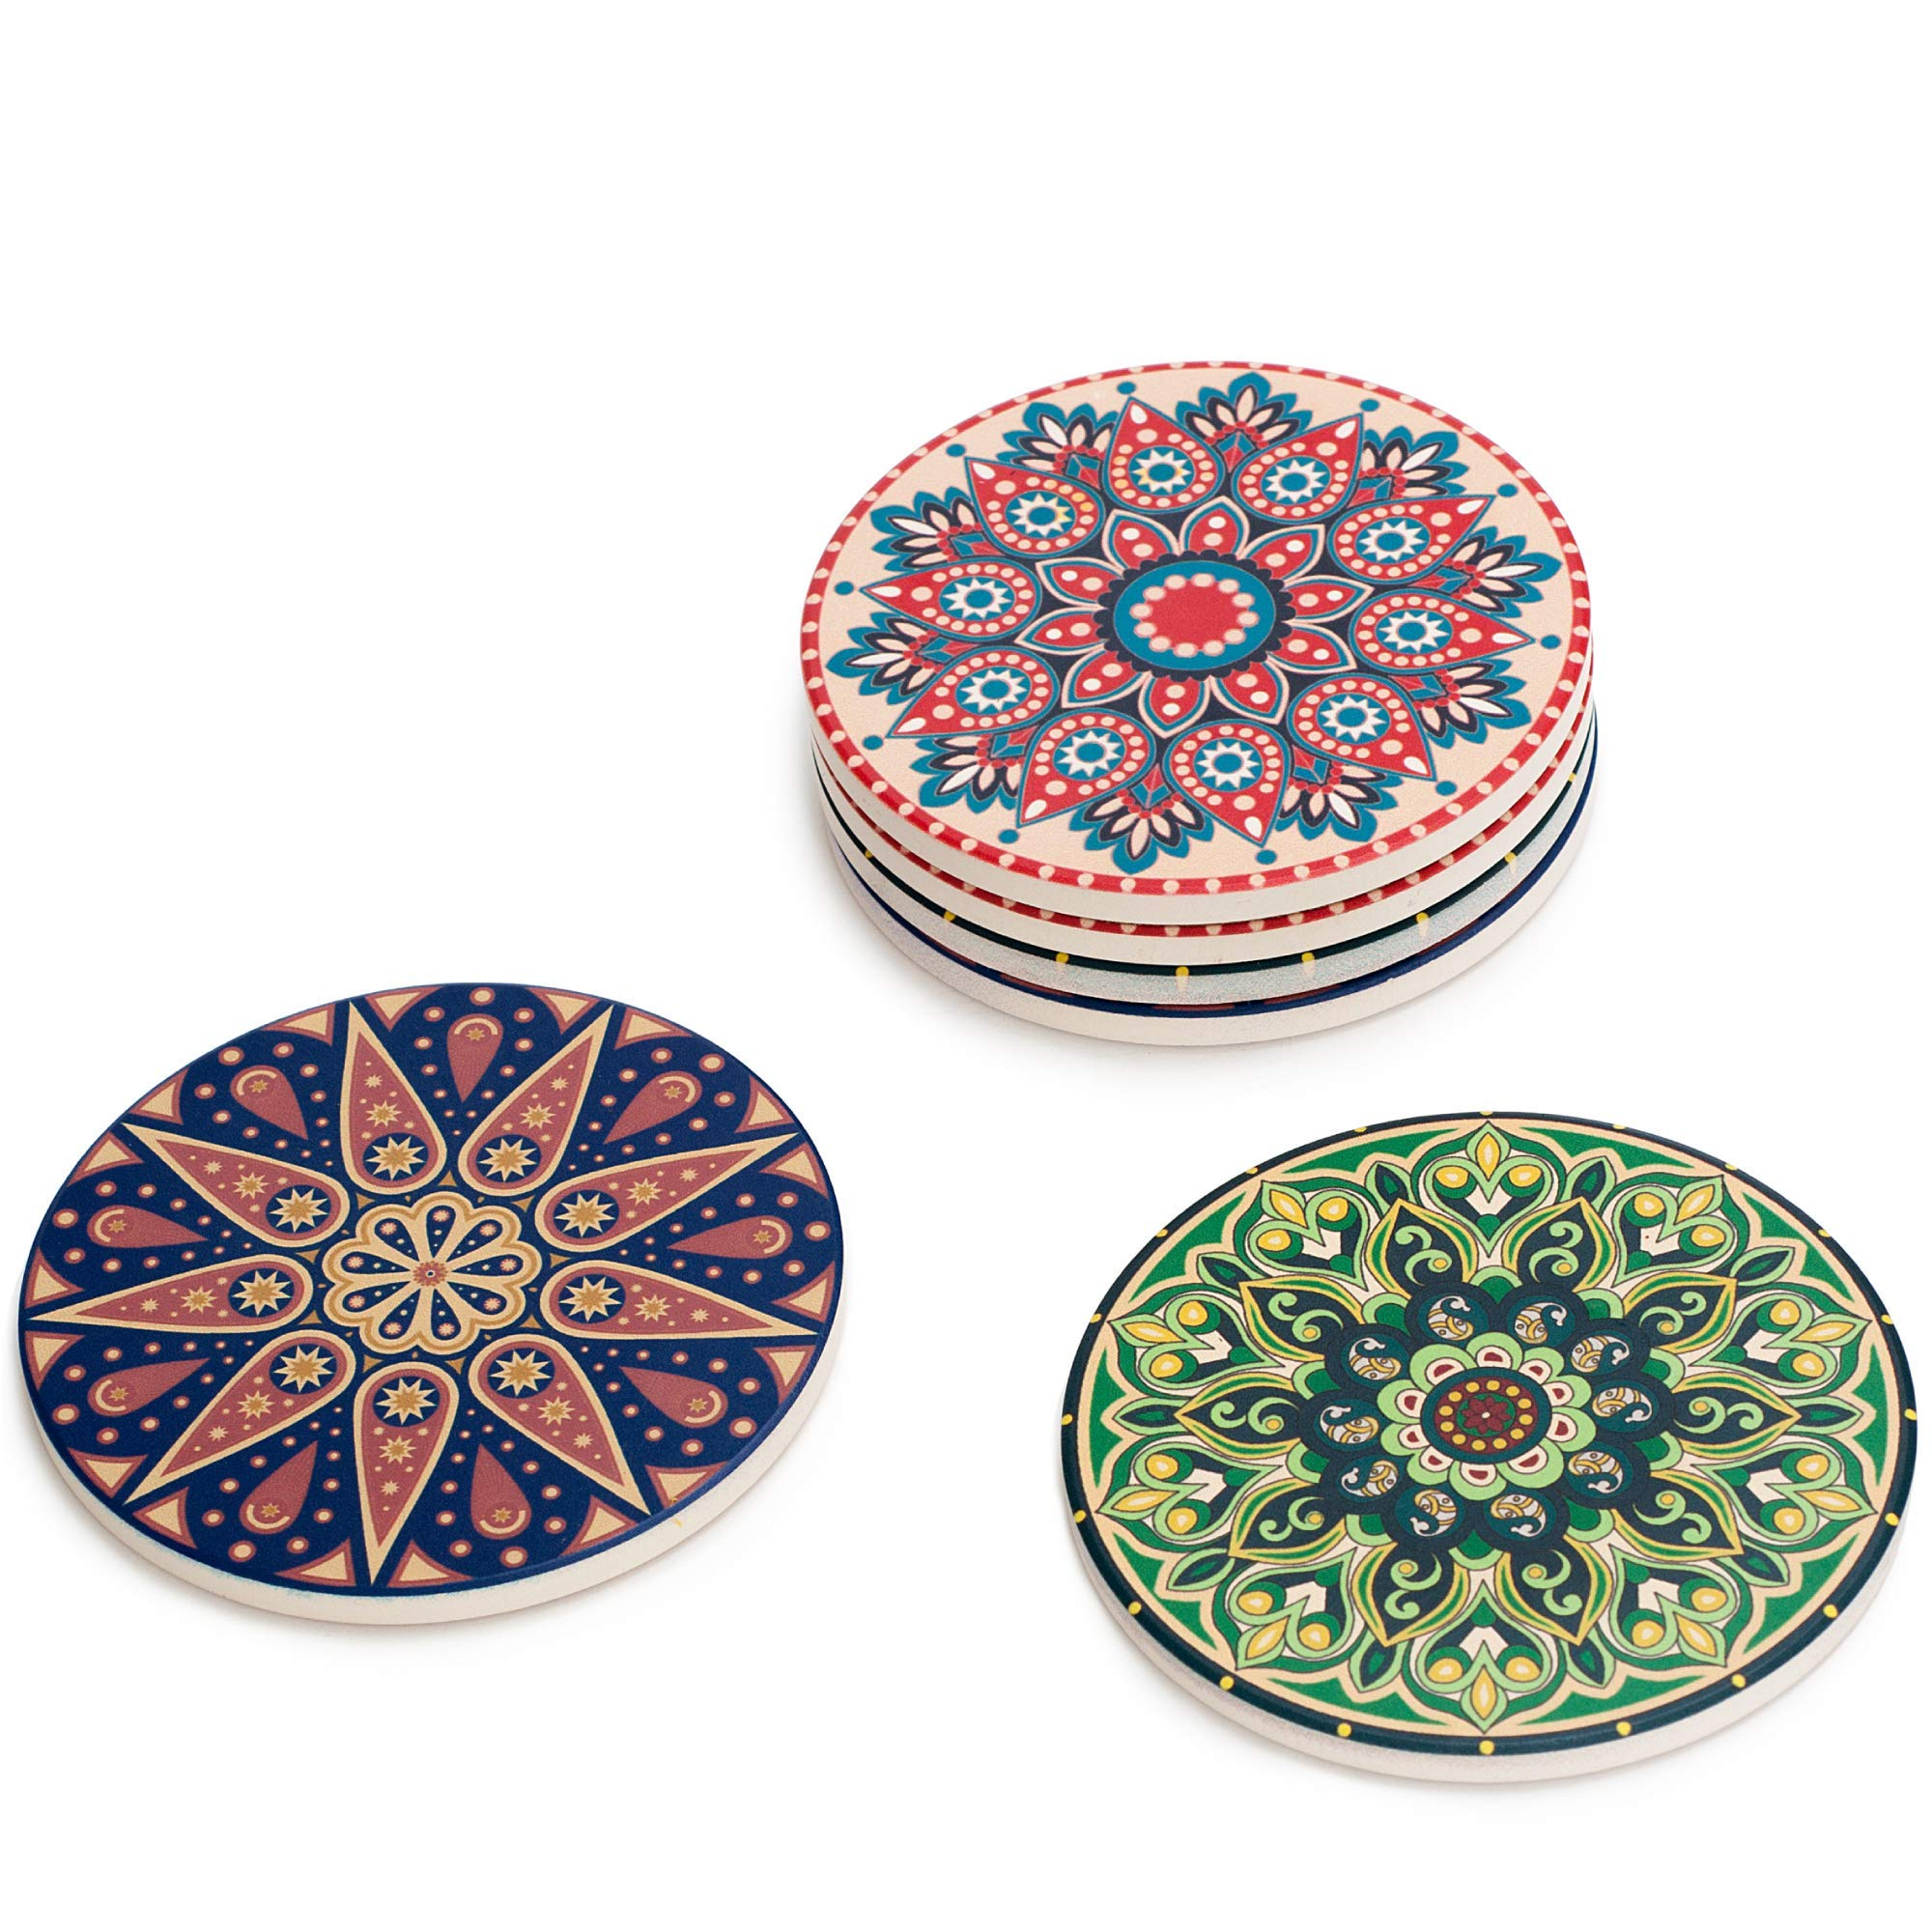 Ceramic Stone Mandala Style Absorbent Coasters For Drinks | 6 Pack with 3 Unique COLORFUL Designs | Cork Base Scratch Protection for your Drink | Indoor and Outdoor | 4.3 inch BRAND NEW